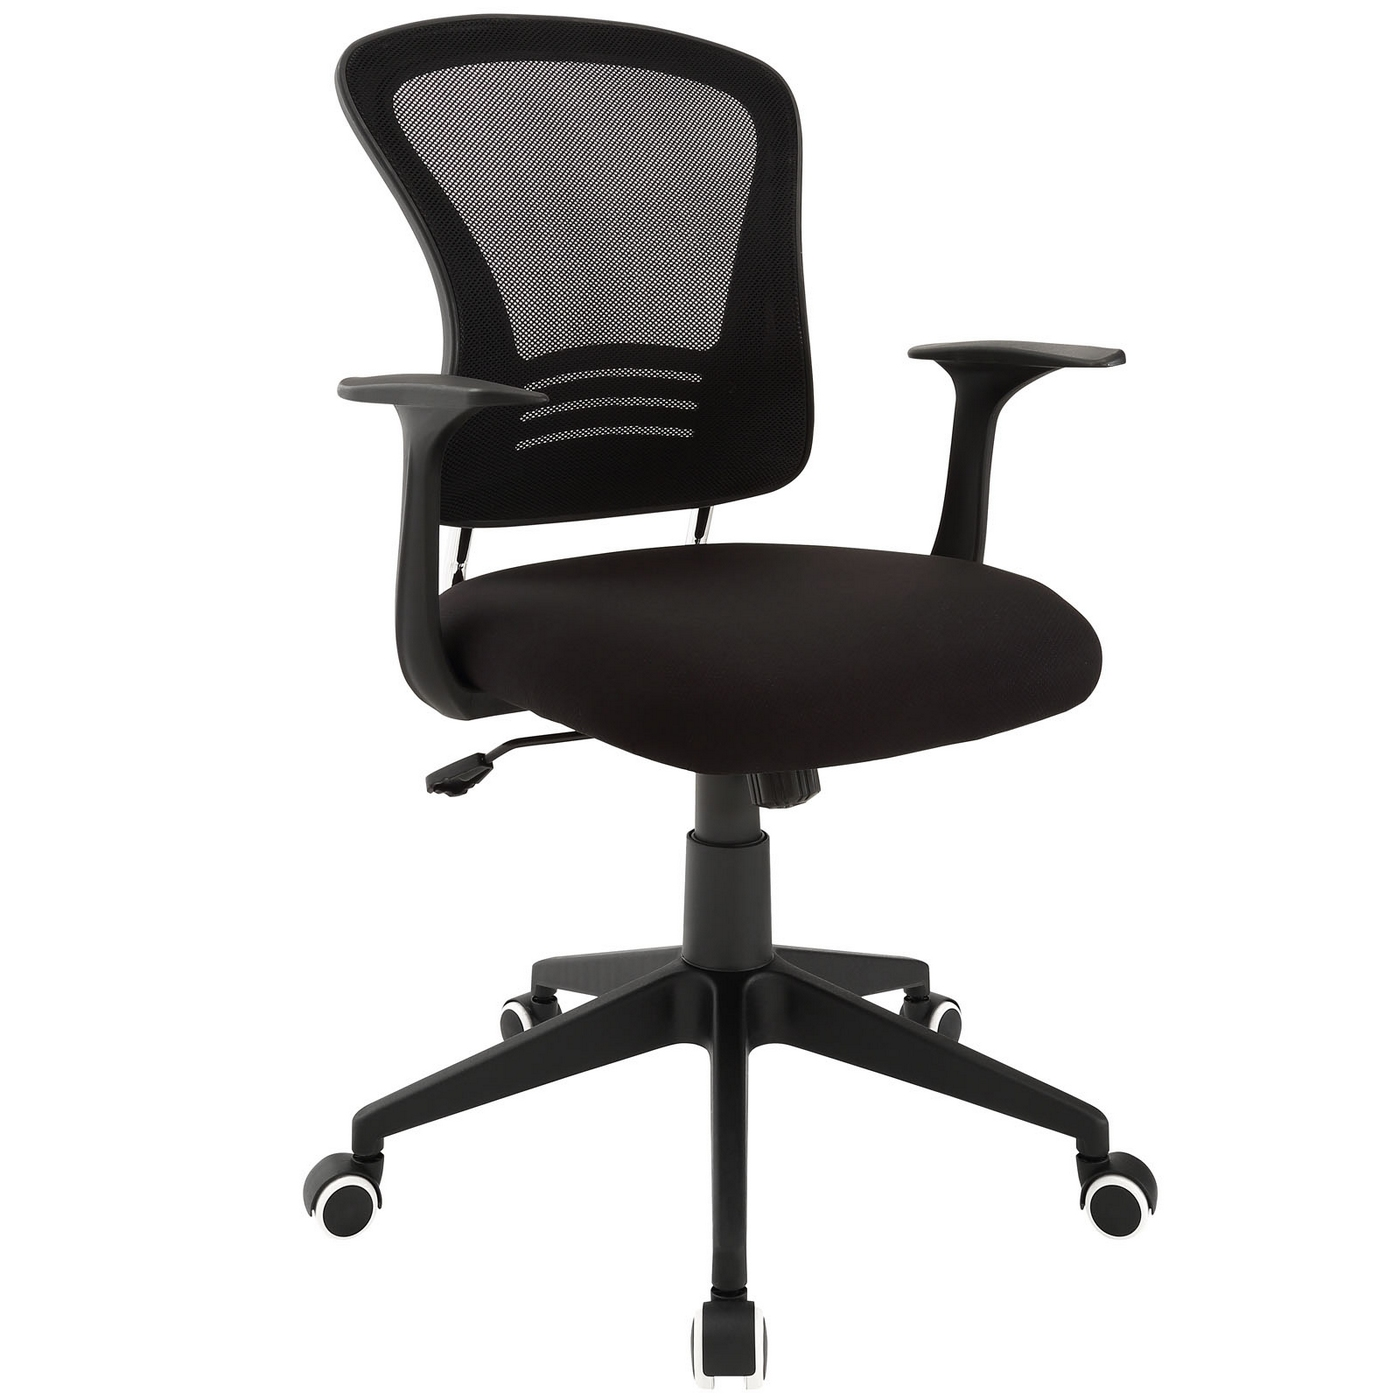 ergonomic office chair with lumbar support